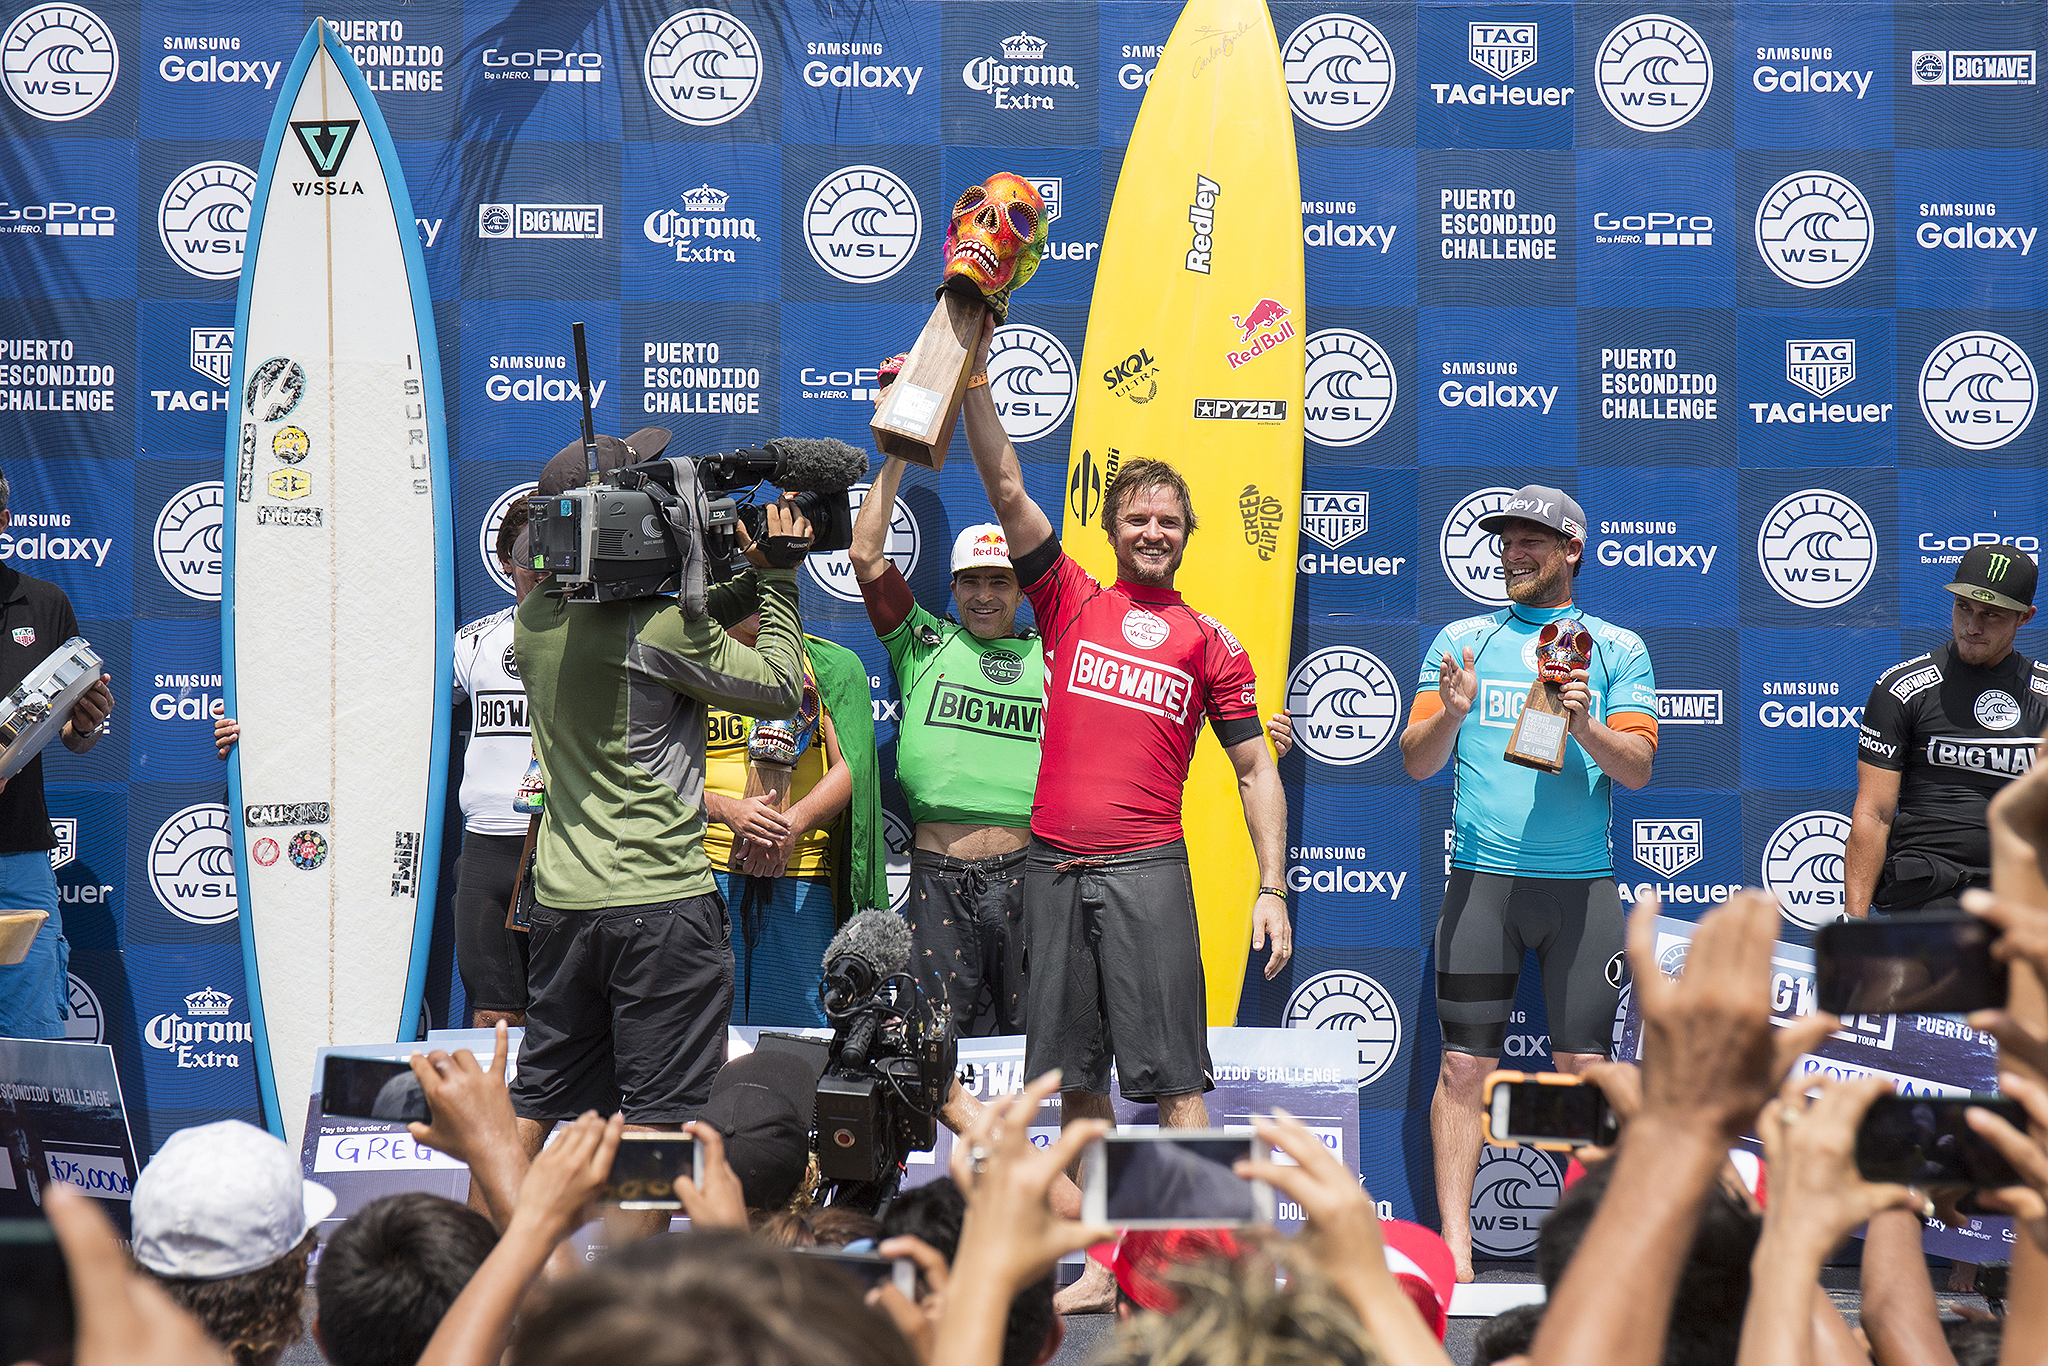 Grant 'Twiggy' Baker of the South Africa (pictured) is the 2016 Puerto Escondido Challenge winner after scoring a perfect 10-point ride for riding an enomrous tube during the final of the Puerto Escondido Challenge in Mexico on Saturday June 25, 2016. Thirty foot waves (ten meter) waves poured into Puerto Escondido that saw the Big Wave World Tour Puerto Escondido Challenge resume in Mexico on Saturday June 26, 2016. PHOTO: © WSL / Heff Social: @wsl @tonyheff This image is the copyright of the World Surf League and is provided royalty free for editorial use only, in all media now known or hereafter created. No commercial rights granted. Sale or license of the images is prohibited. This image is a factually accurate rendering of what it depicts and has not been modified or augmented except for standard cropping and toning. ALL RIGHTS RESERVED.